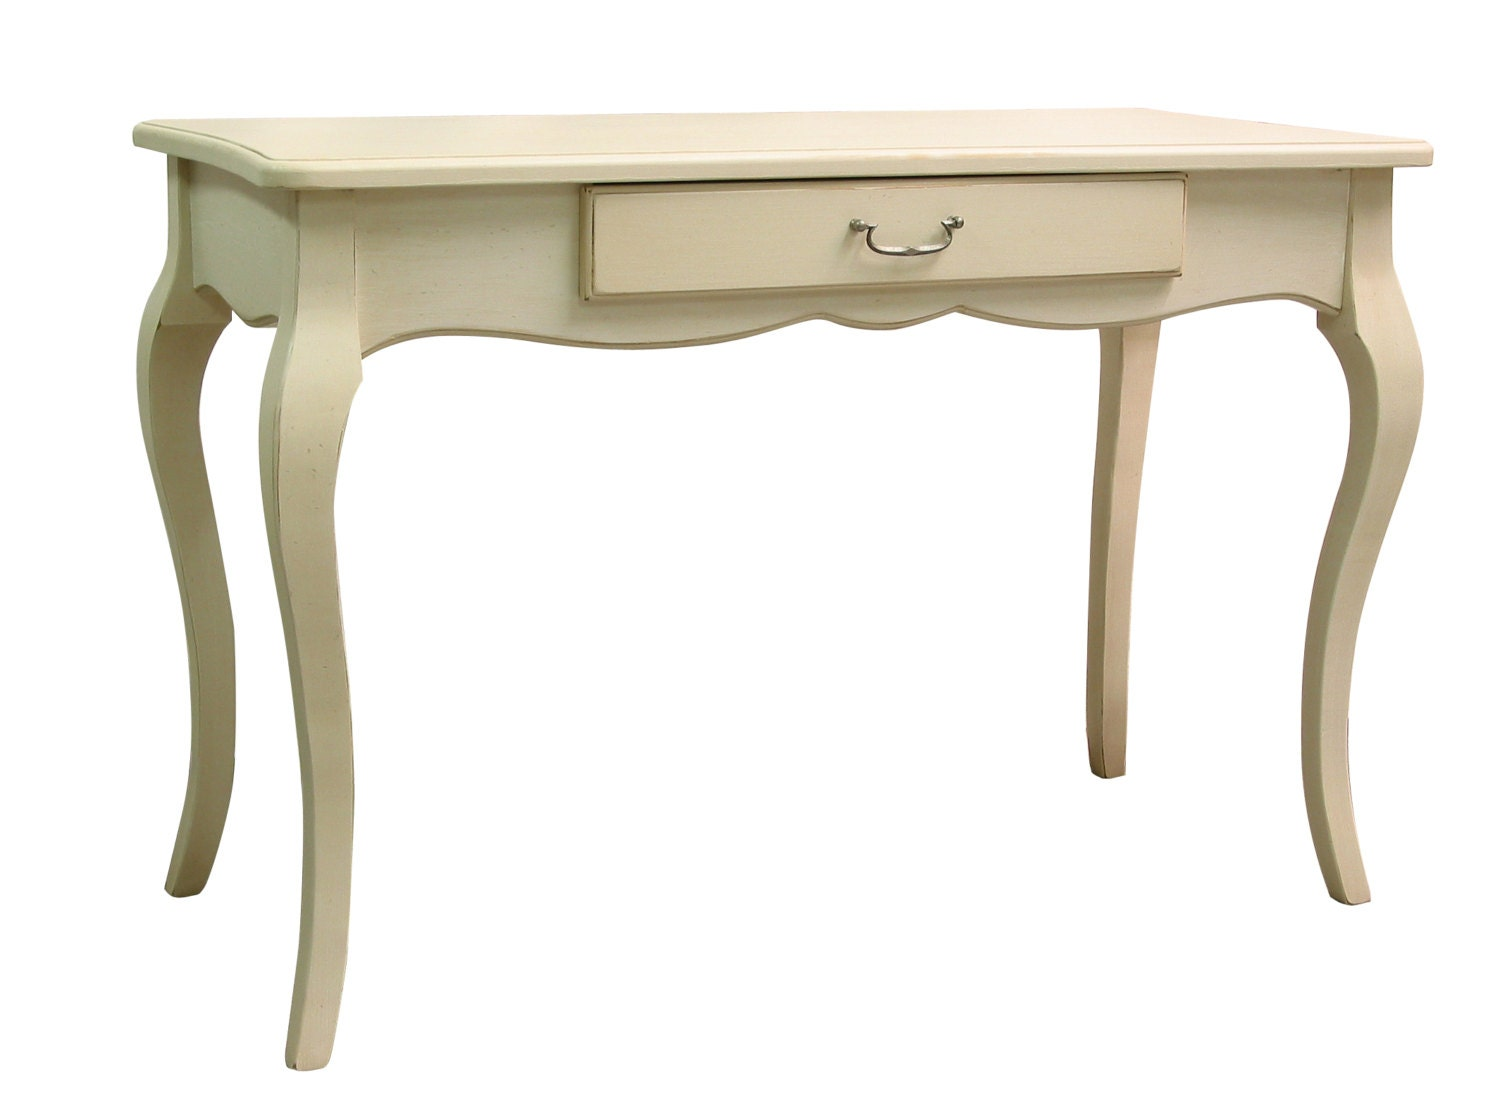 french writing desks We offer a wide range of quality french furniture at competitive prices including reproduction french beds, tables, chairs, chaise lounge - buy online.